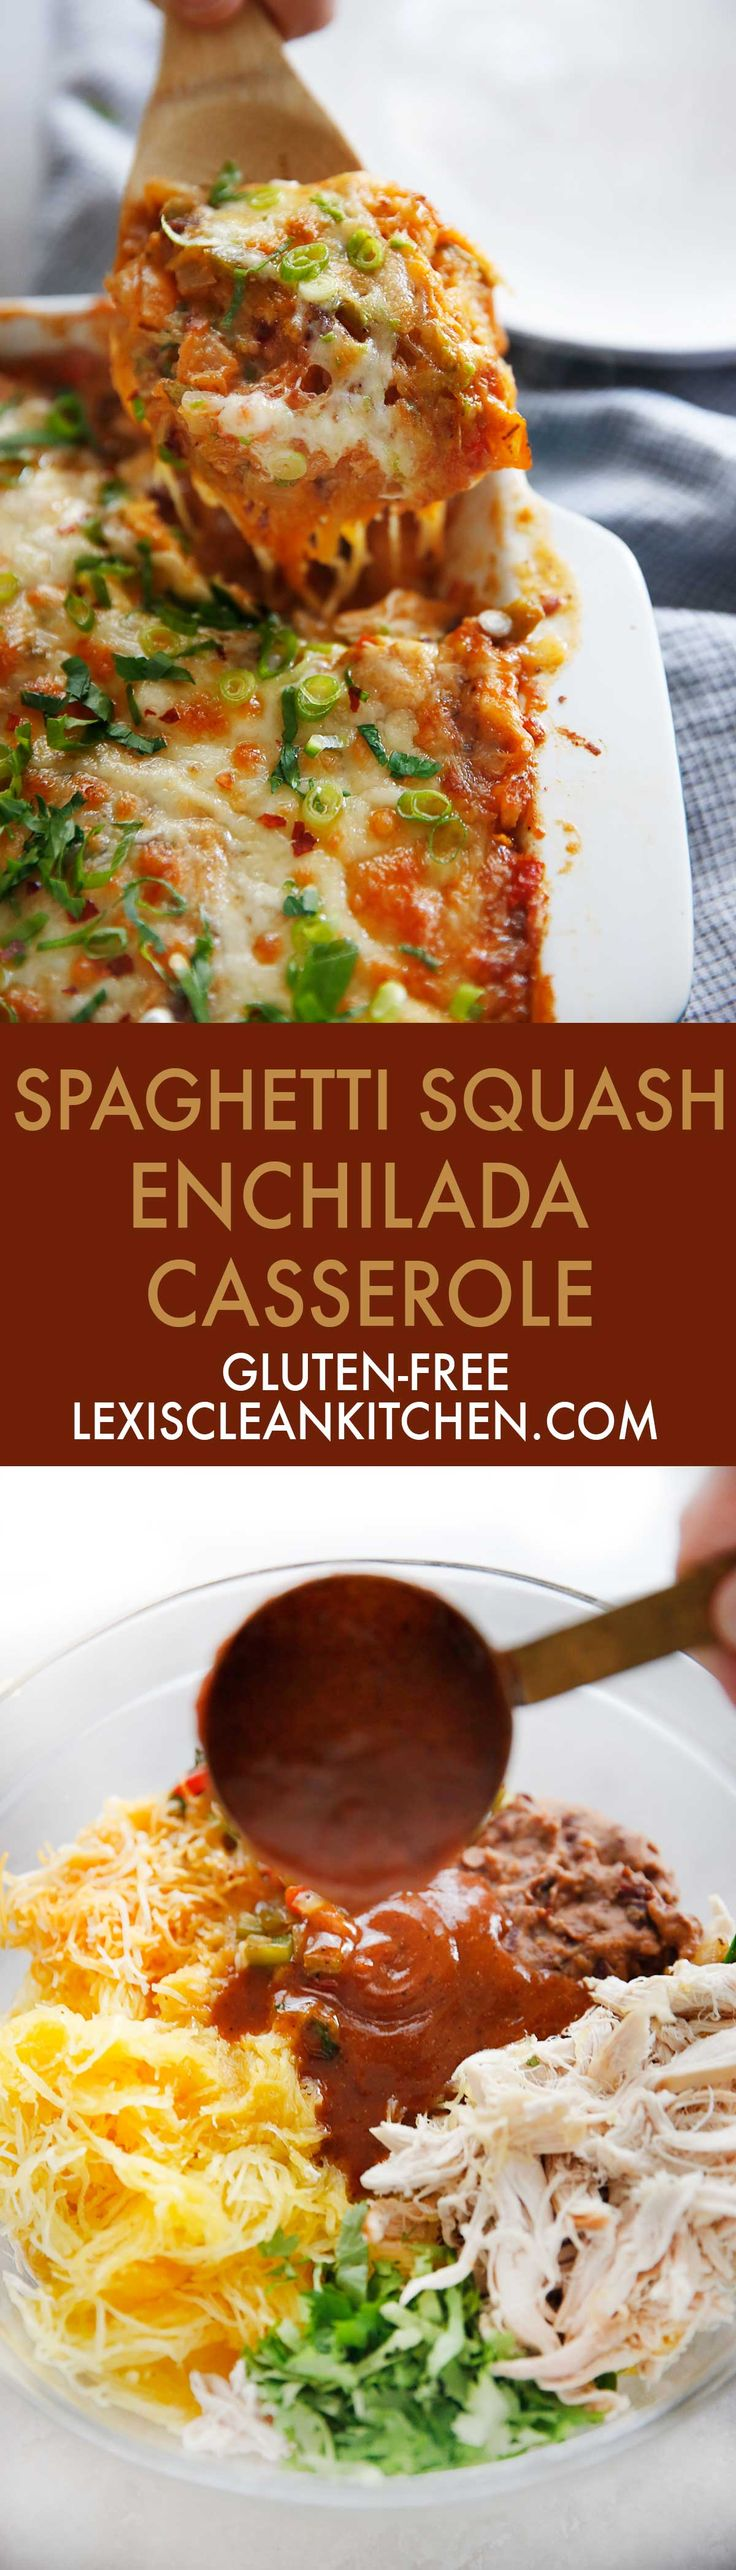 This Spaghetti Squash Enchilada Casserole with chicken is healthy, gluten-free, and paleo-friendly casserole! It's a delicious meal that everyone will love.